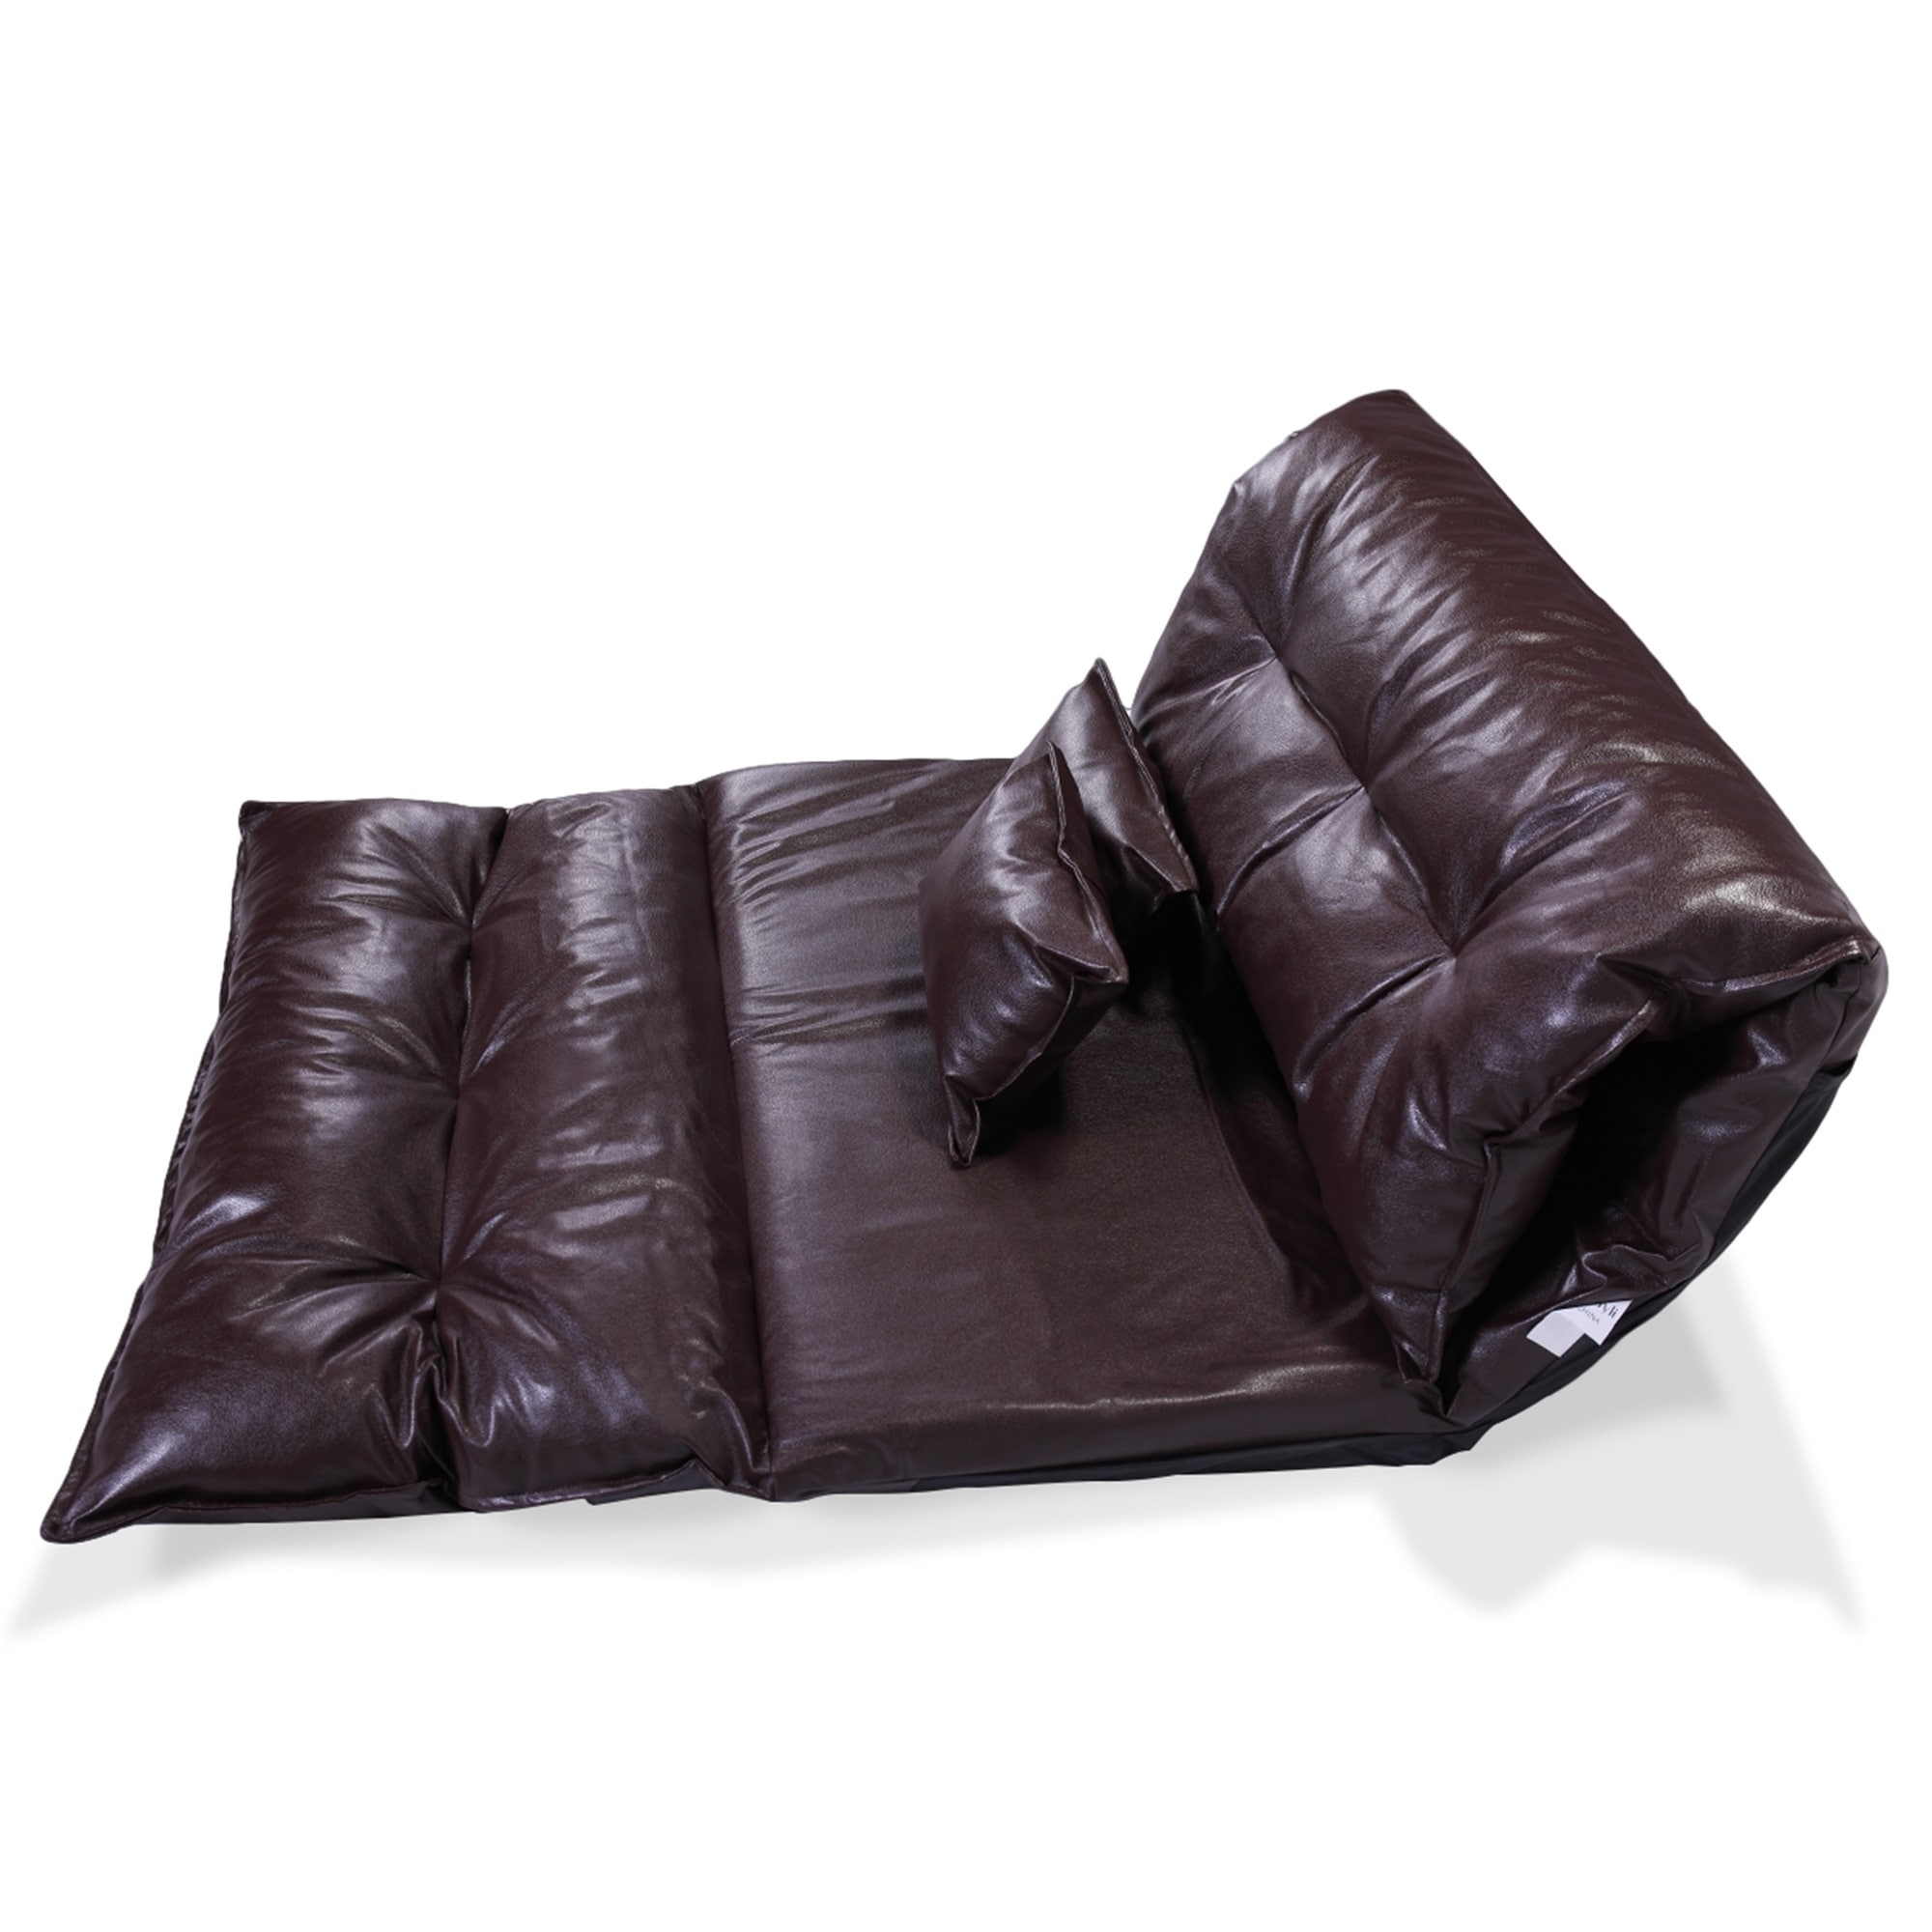 Shop Leather Foldable Floor Chair Sofa Bed Video Gaming Lounge W 2 Pillows Overstock 31733744